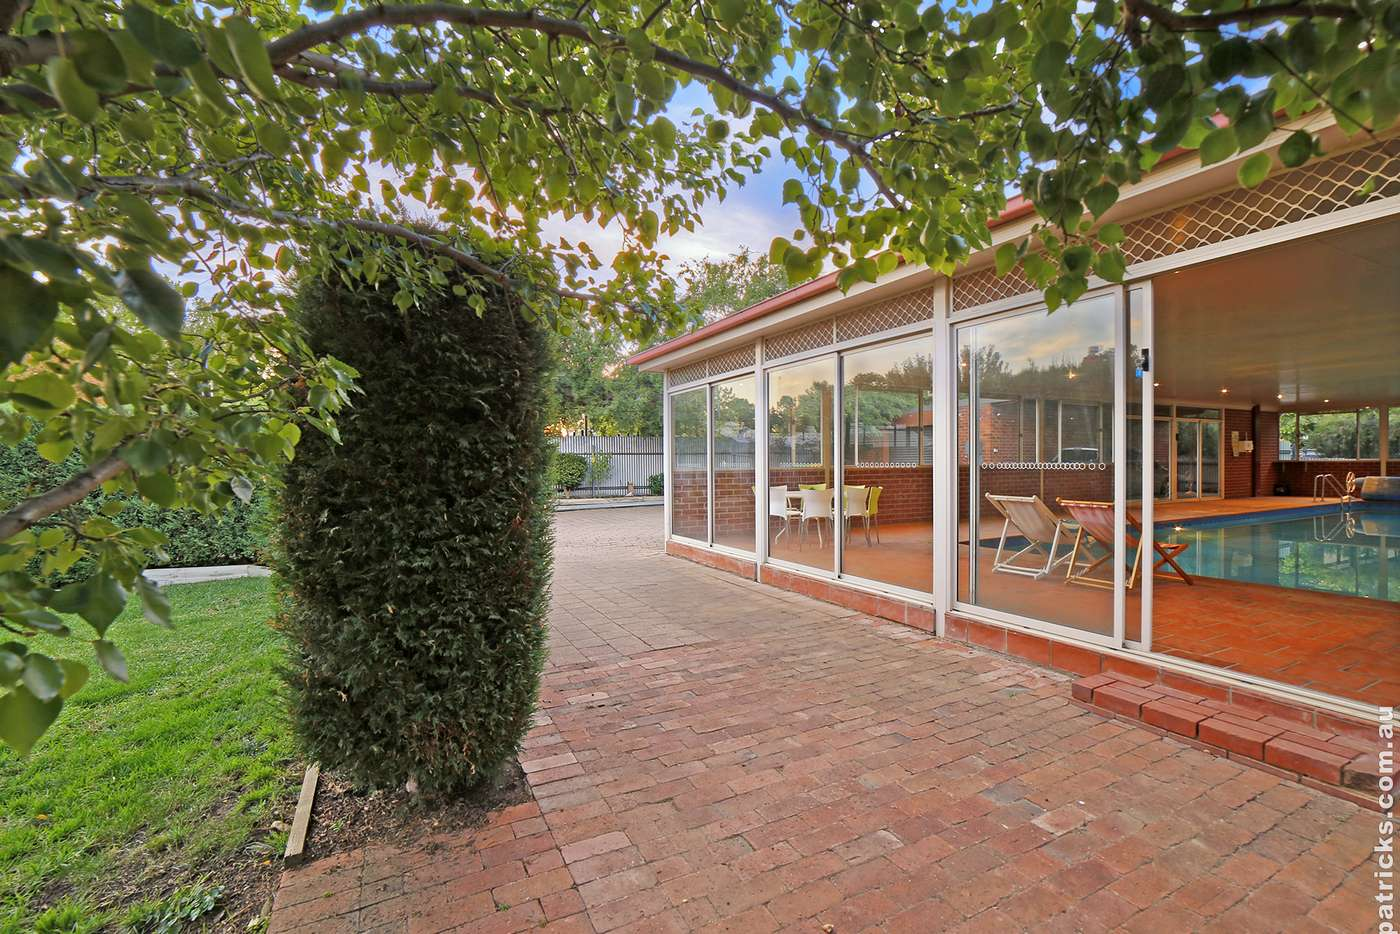 Fifth view of Homely house listing, 89 Johnston Street, Wagga Wagga NSW 2650